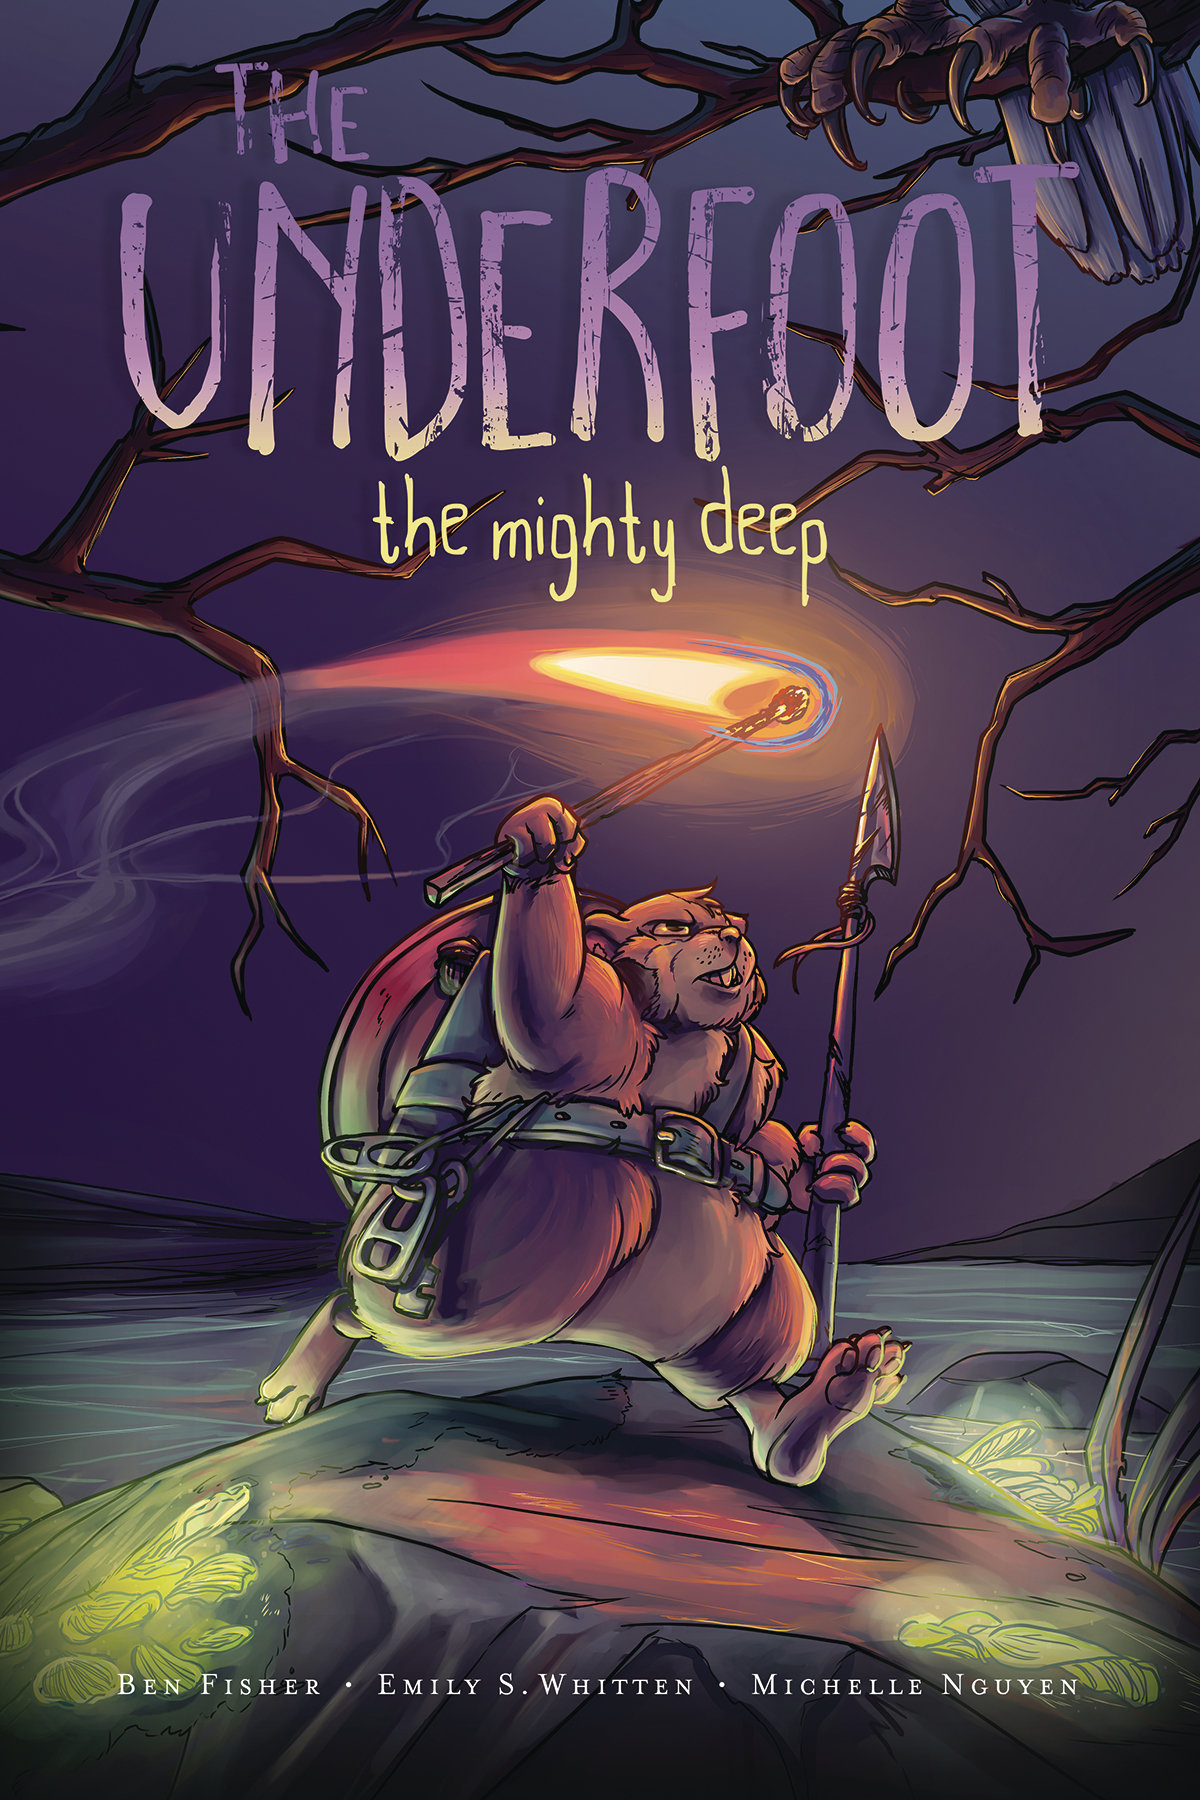 The Underfoot Vol. 1: The Mighty Deep